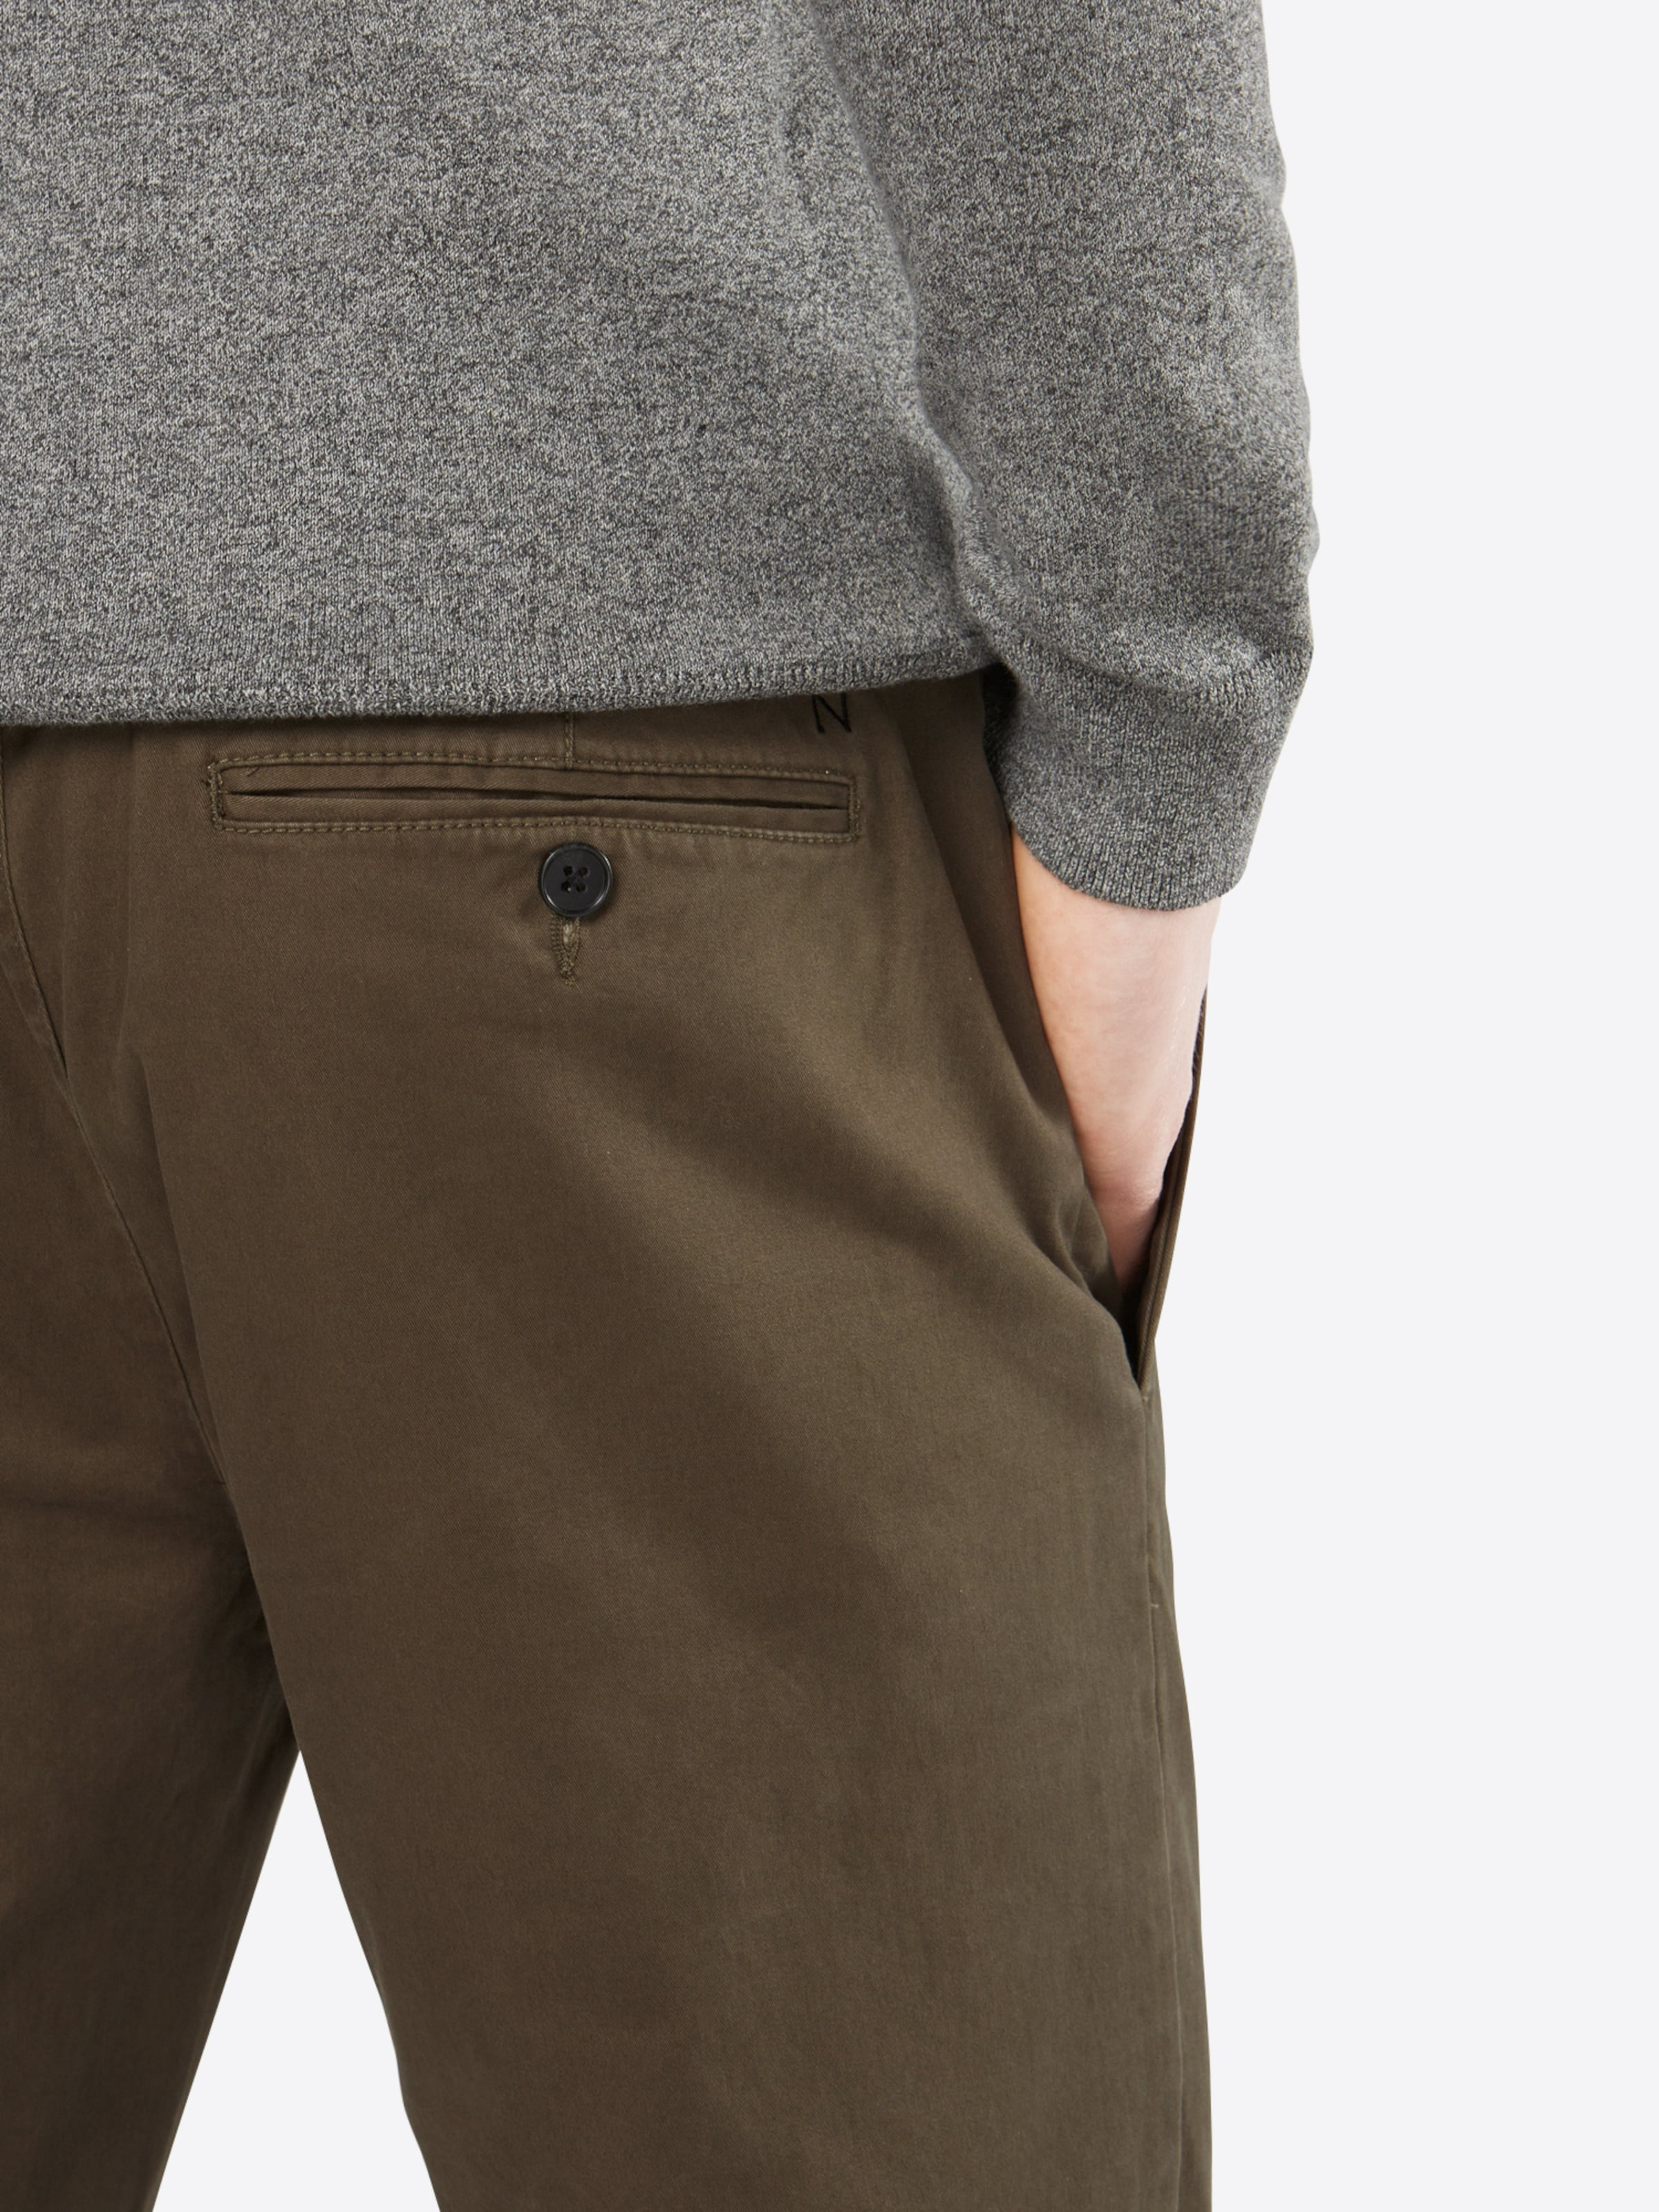 NOWADAYS Hose 'The Modern Pant' Spielraum Eastbay sZHHjUE4c